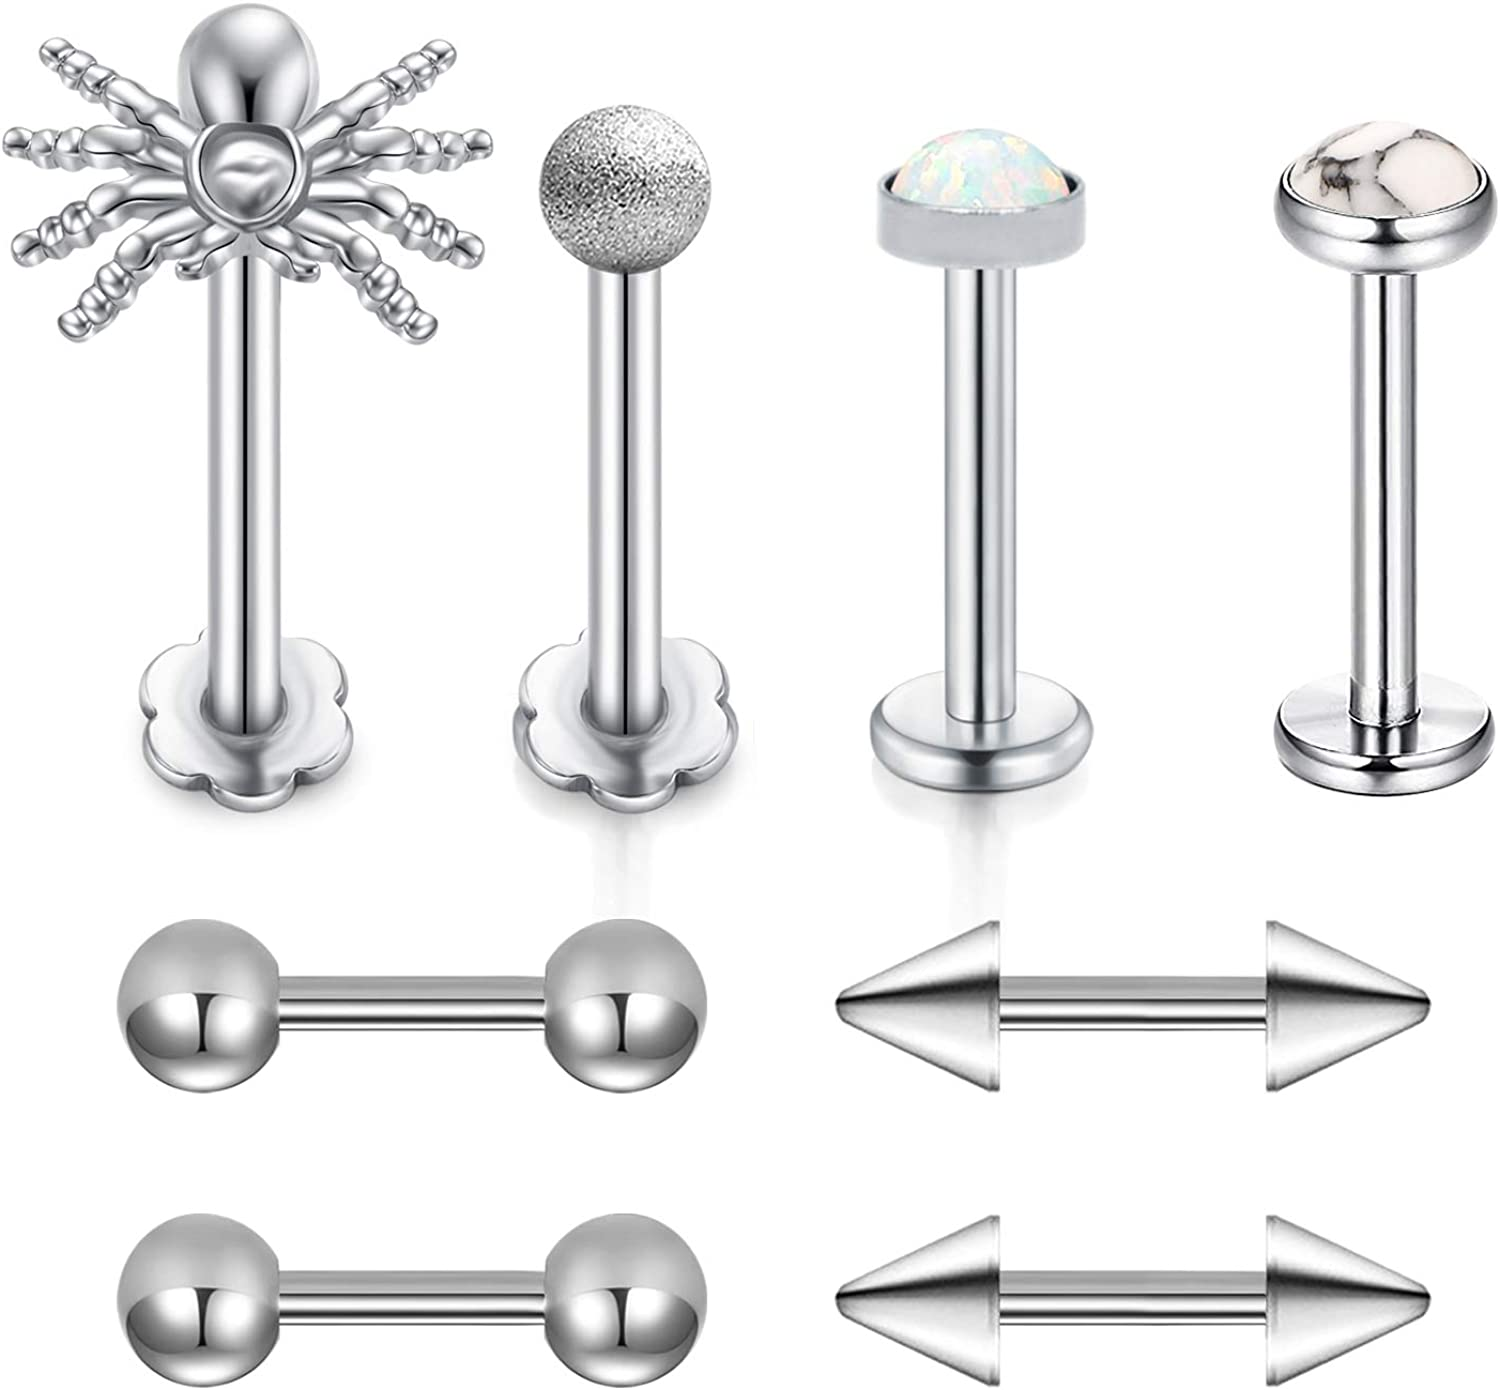 Briana Williams 16G Stainless Steel CZ Crystal Ferido Ball Labret Monroe Lip Rings Cartilage Tragus Helix Earring Barbell Stud Piercing Jewelry 6mm 1//4 Inch